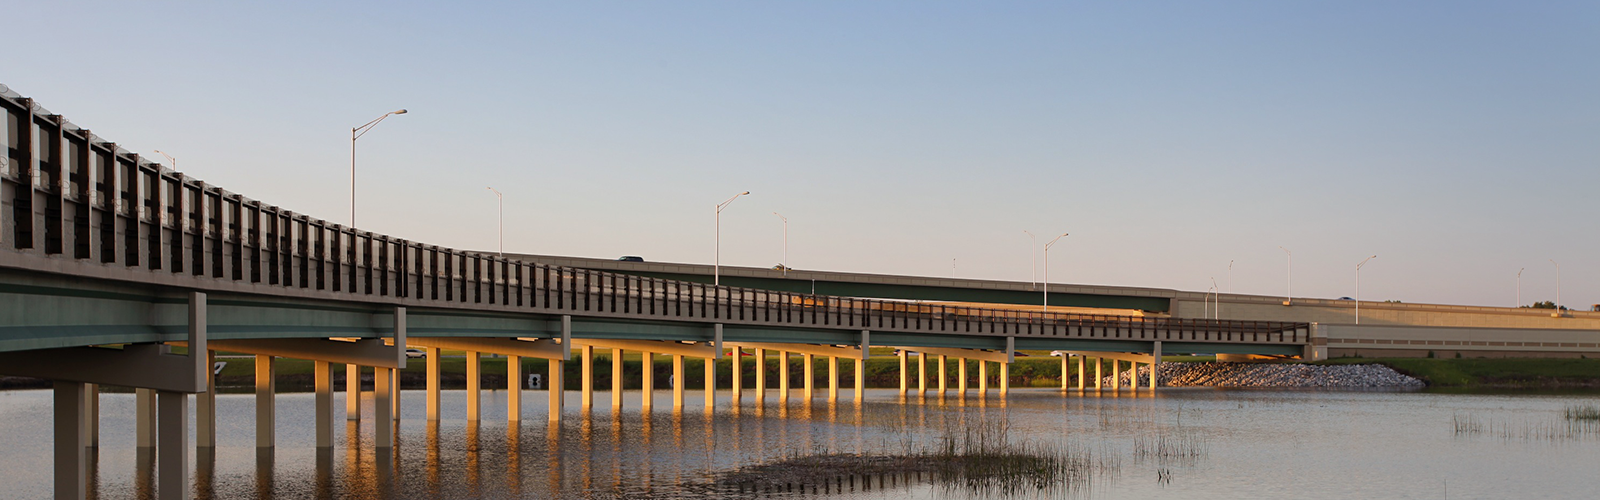 Central Florida Expressway toll road 417 bridges over lakes